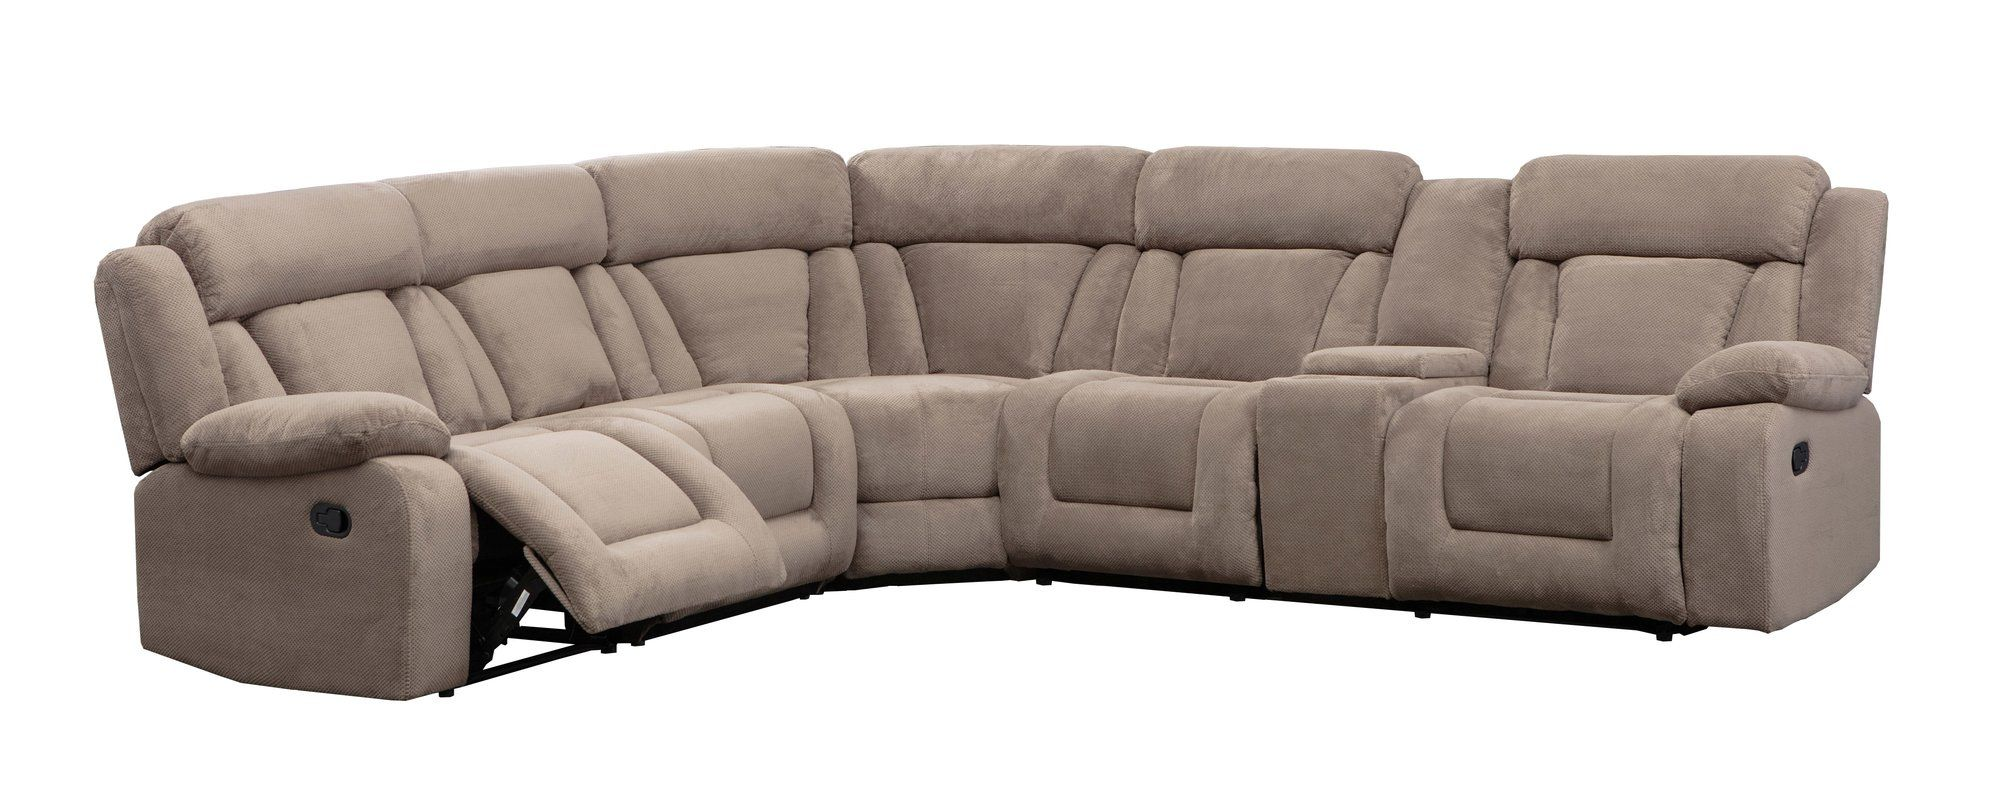 Herald Square Reclining Sectional Furniture Pinterest